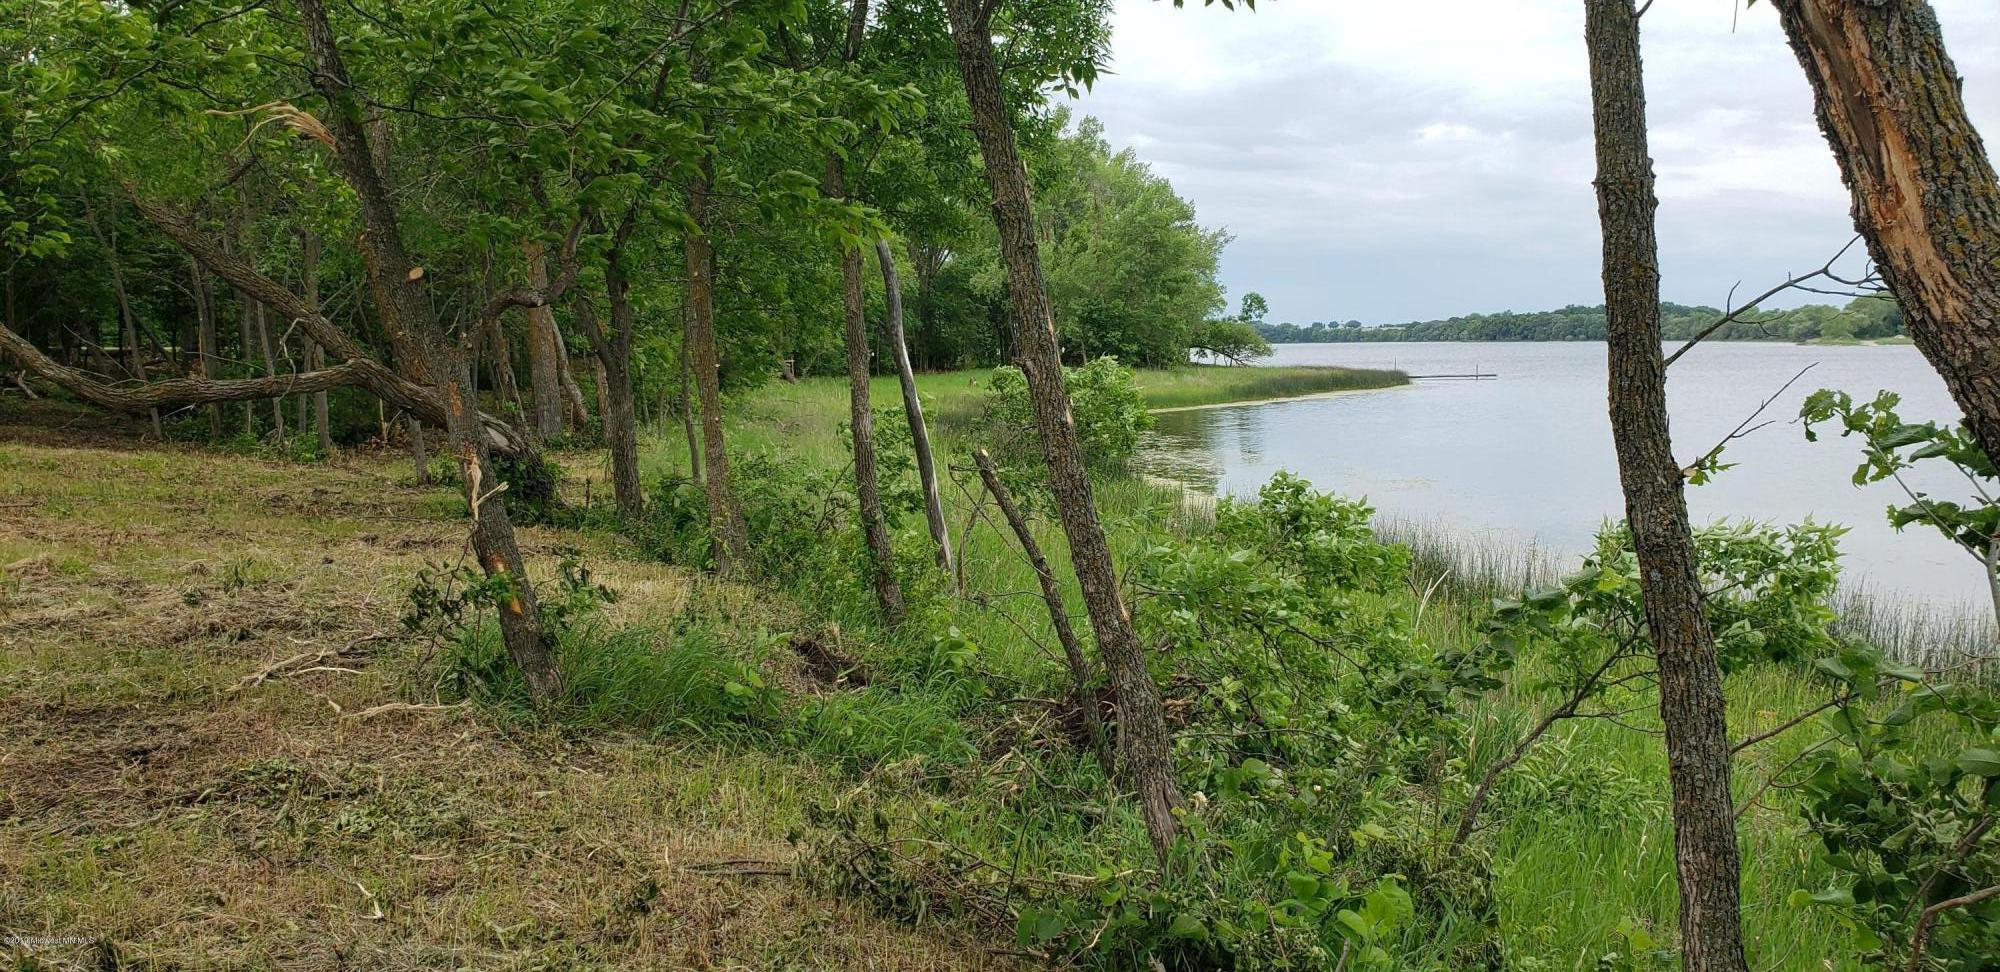 Lot 2 Bluegill Bay Estates - Ashby, MN 56309